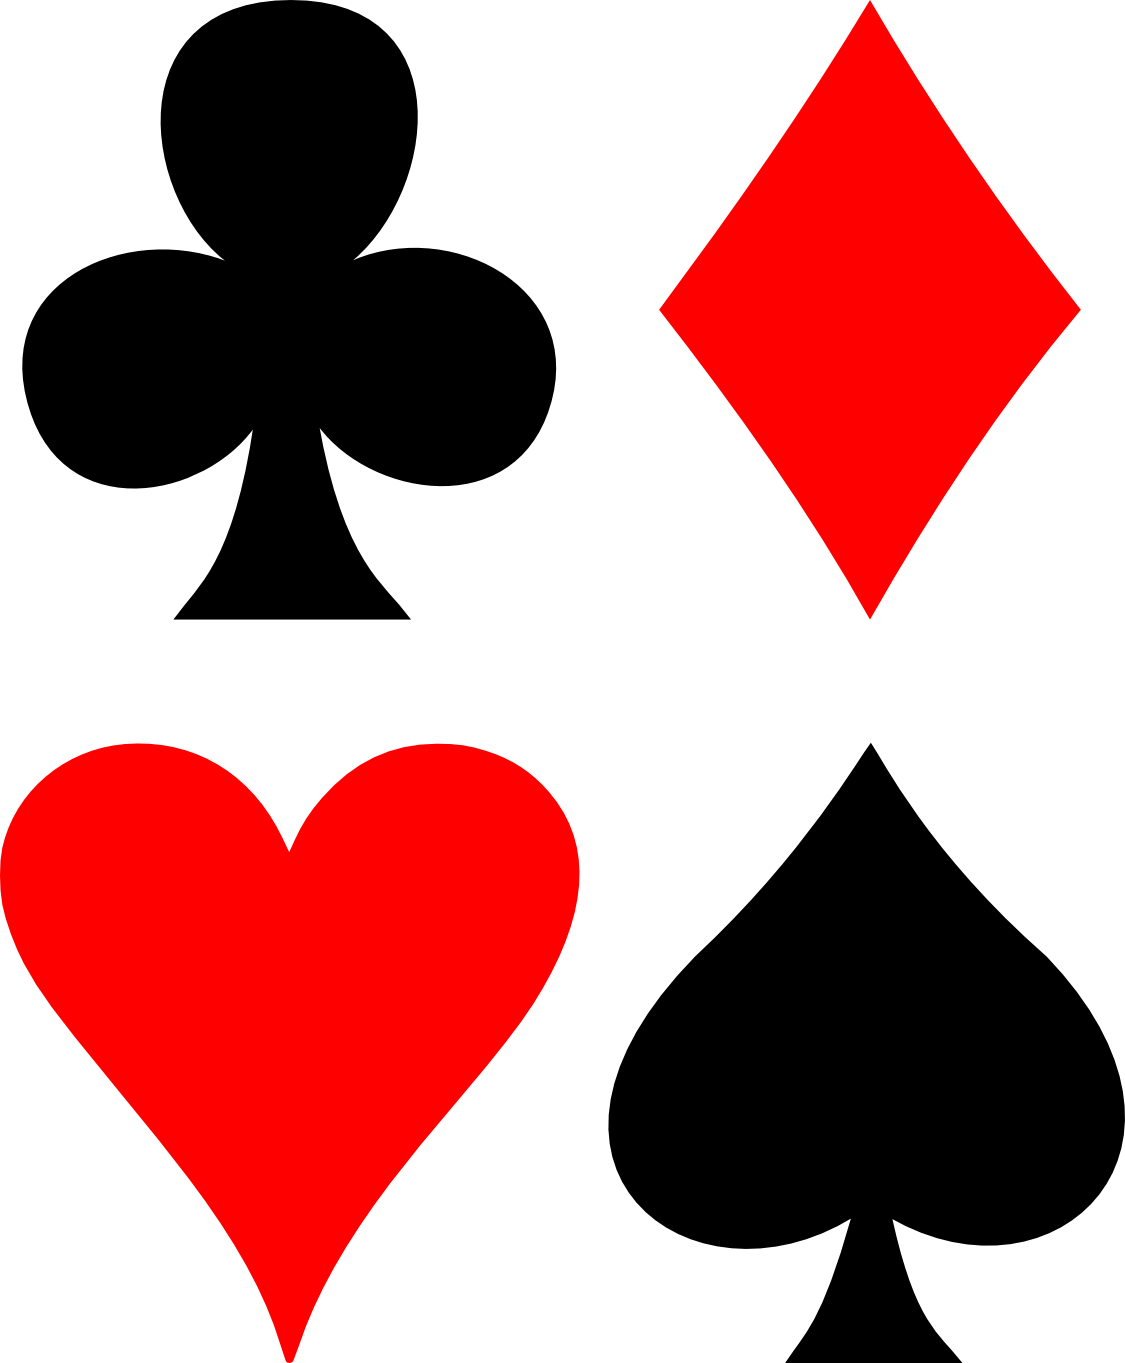 28 pictures of deck of cards free cliparts that you can download to